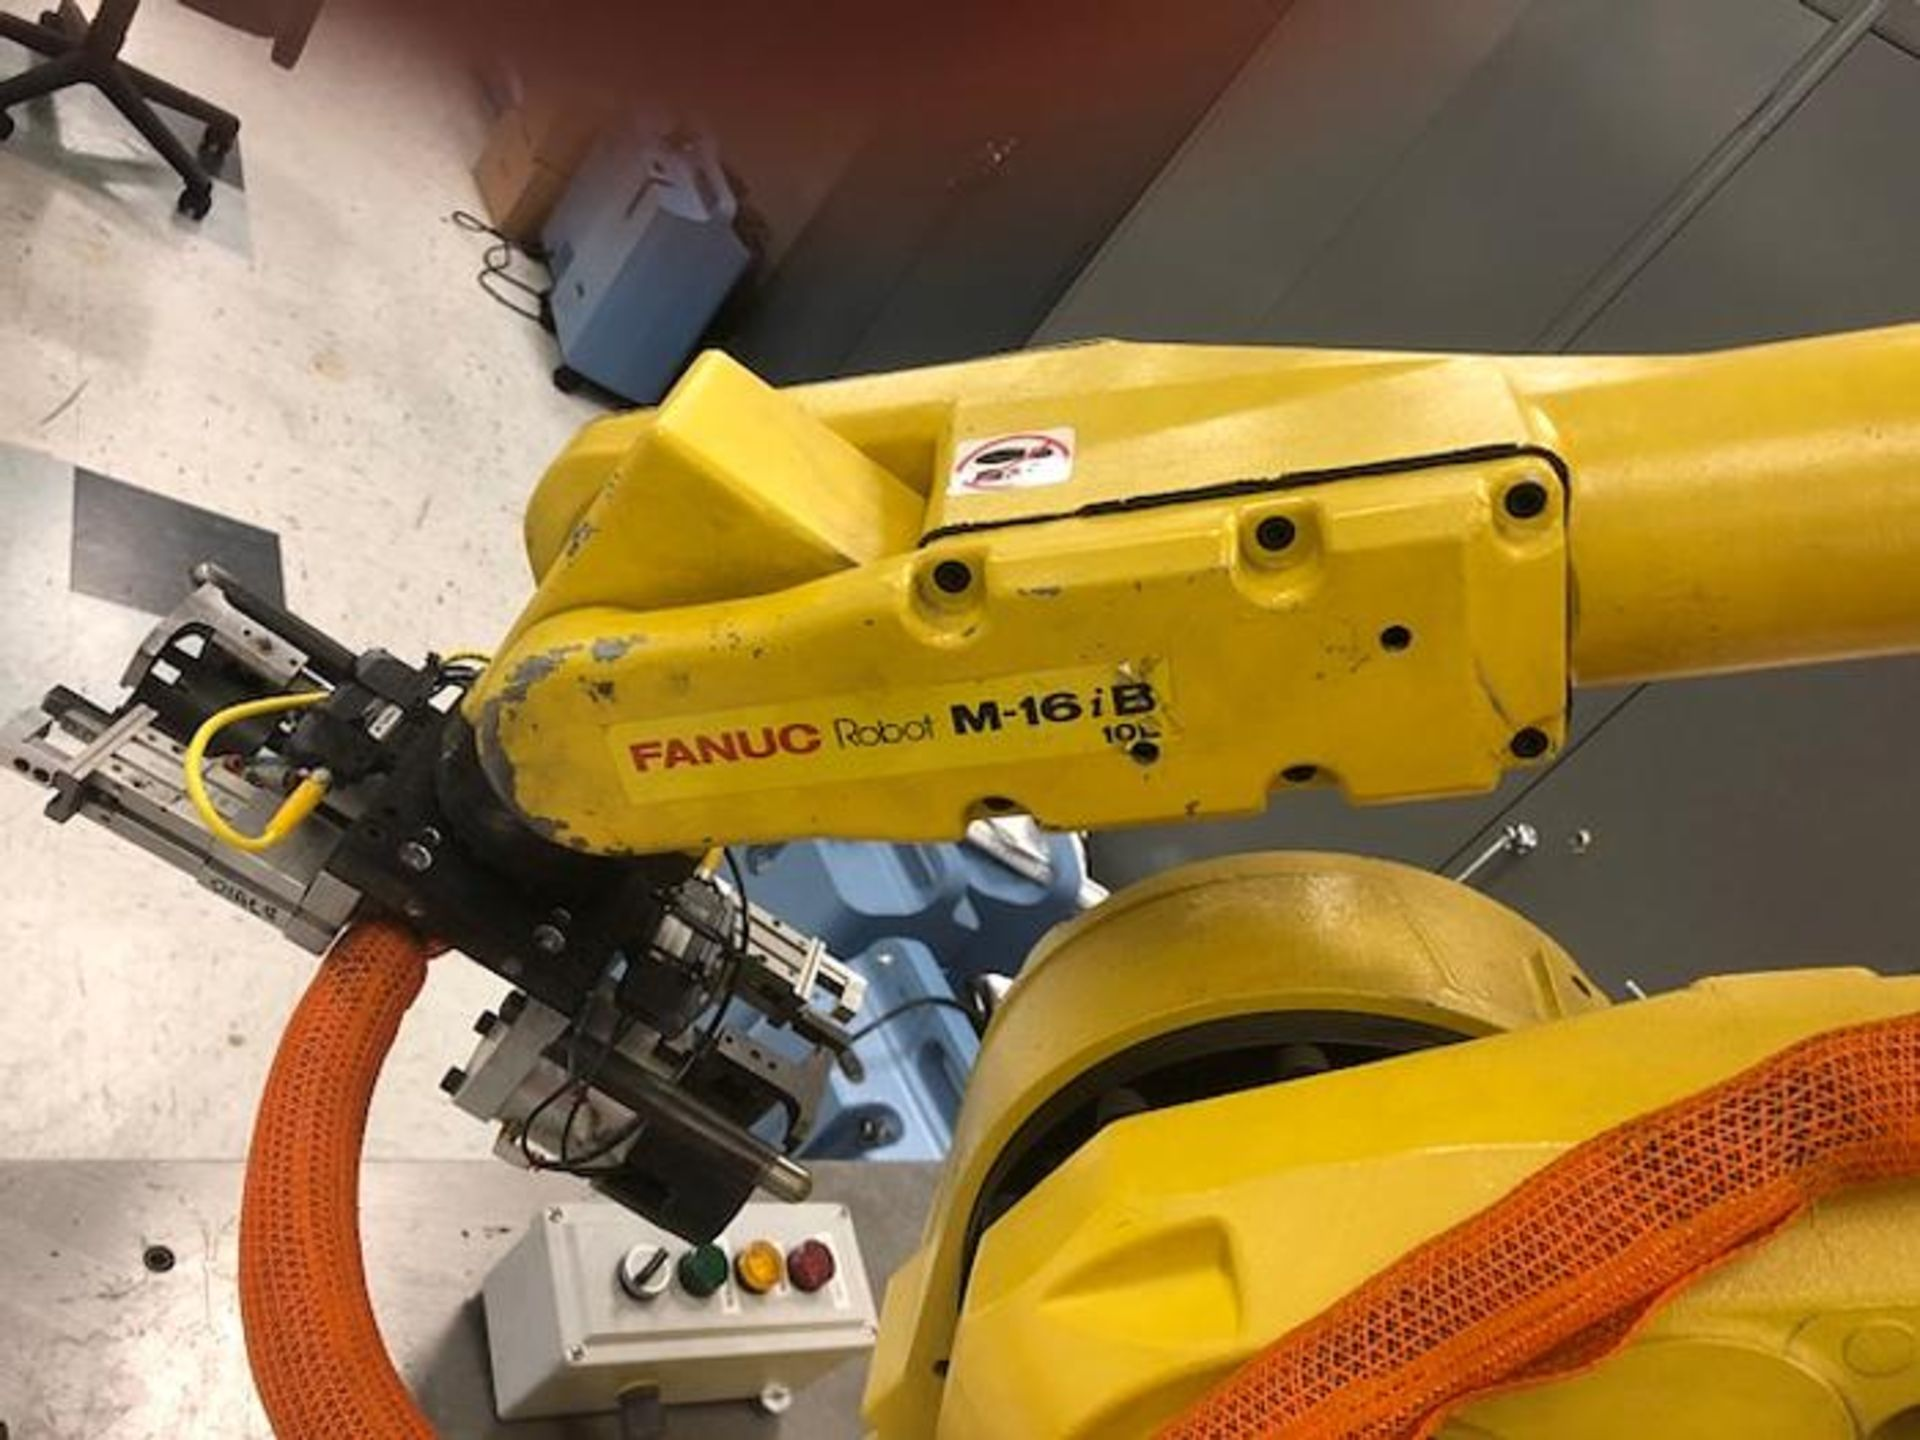 FANUC ROBOT M16iB/10L WITH RJ3iC (R30iA) CONTROLLER, TEACH & CABLES, YEAR 2006, SN 80306 - Image 6 of 17